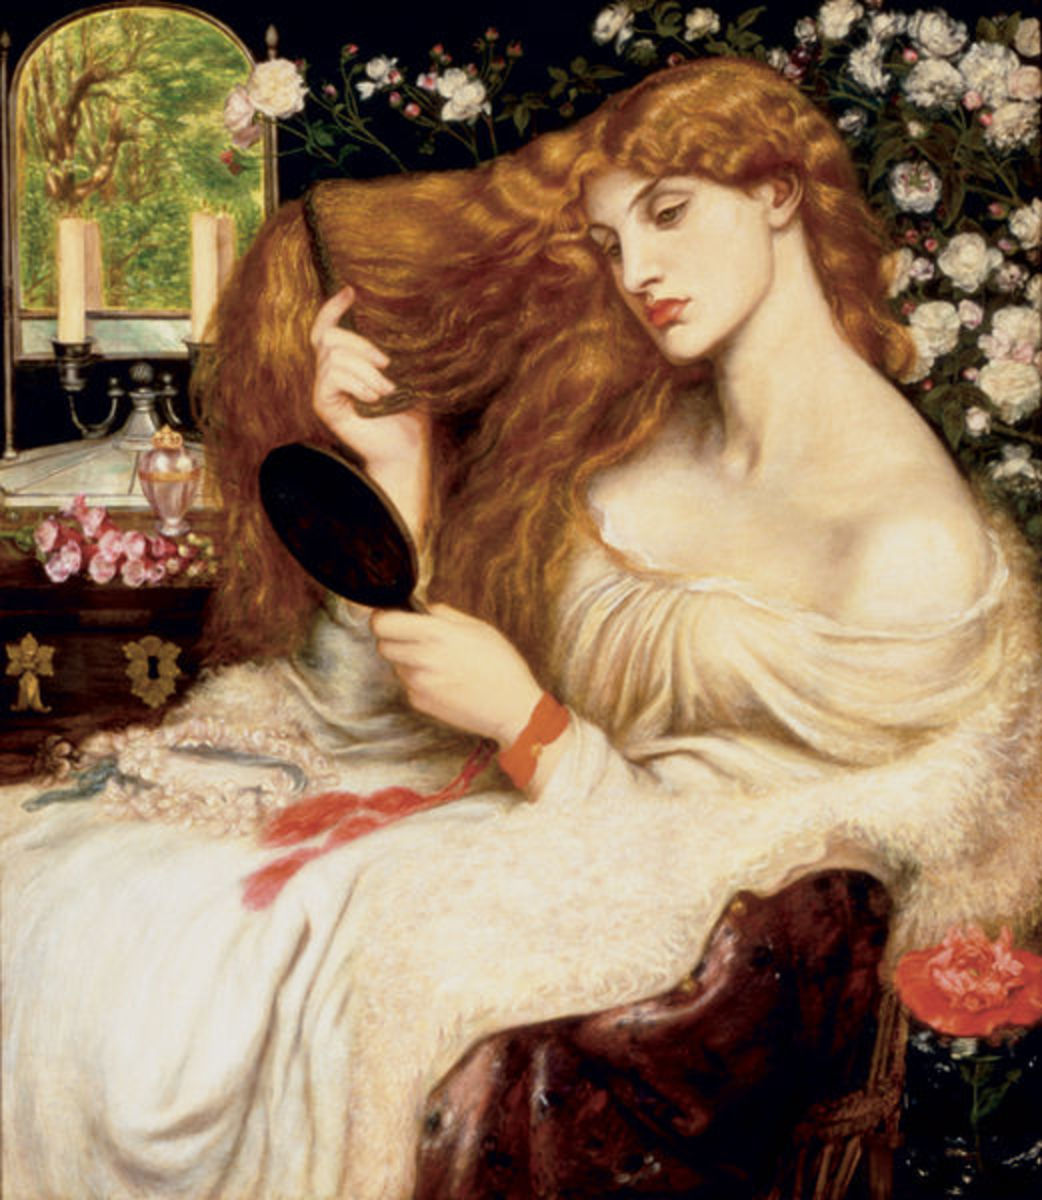 Lady Lilith by Dante Gabriel Rossetti, 1866-68. Delaware Art Museum, coutesy Wiki Commons